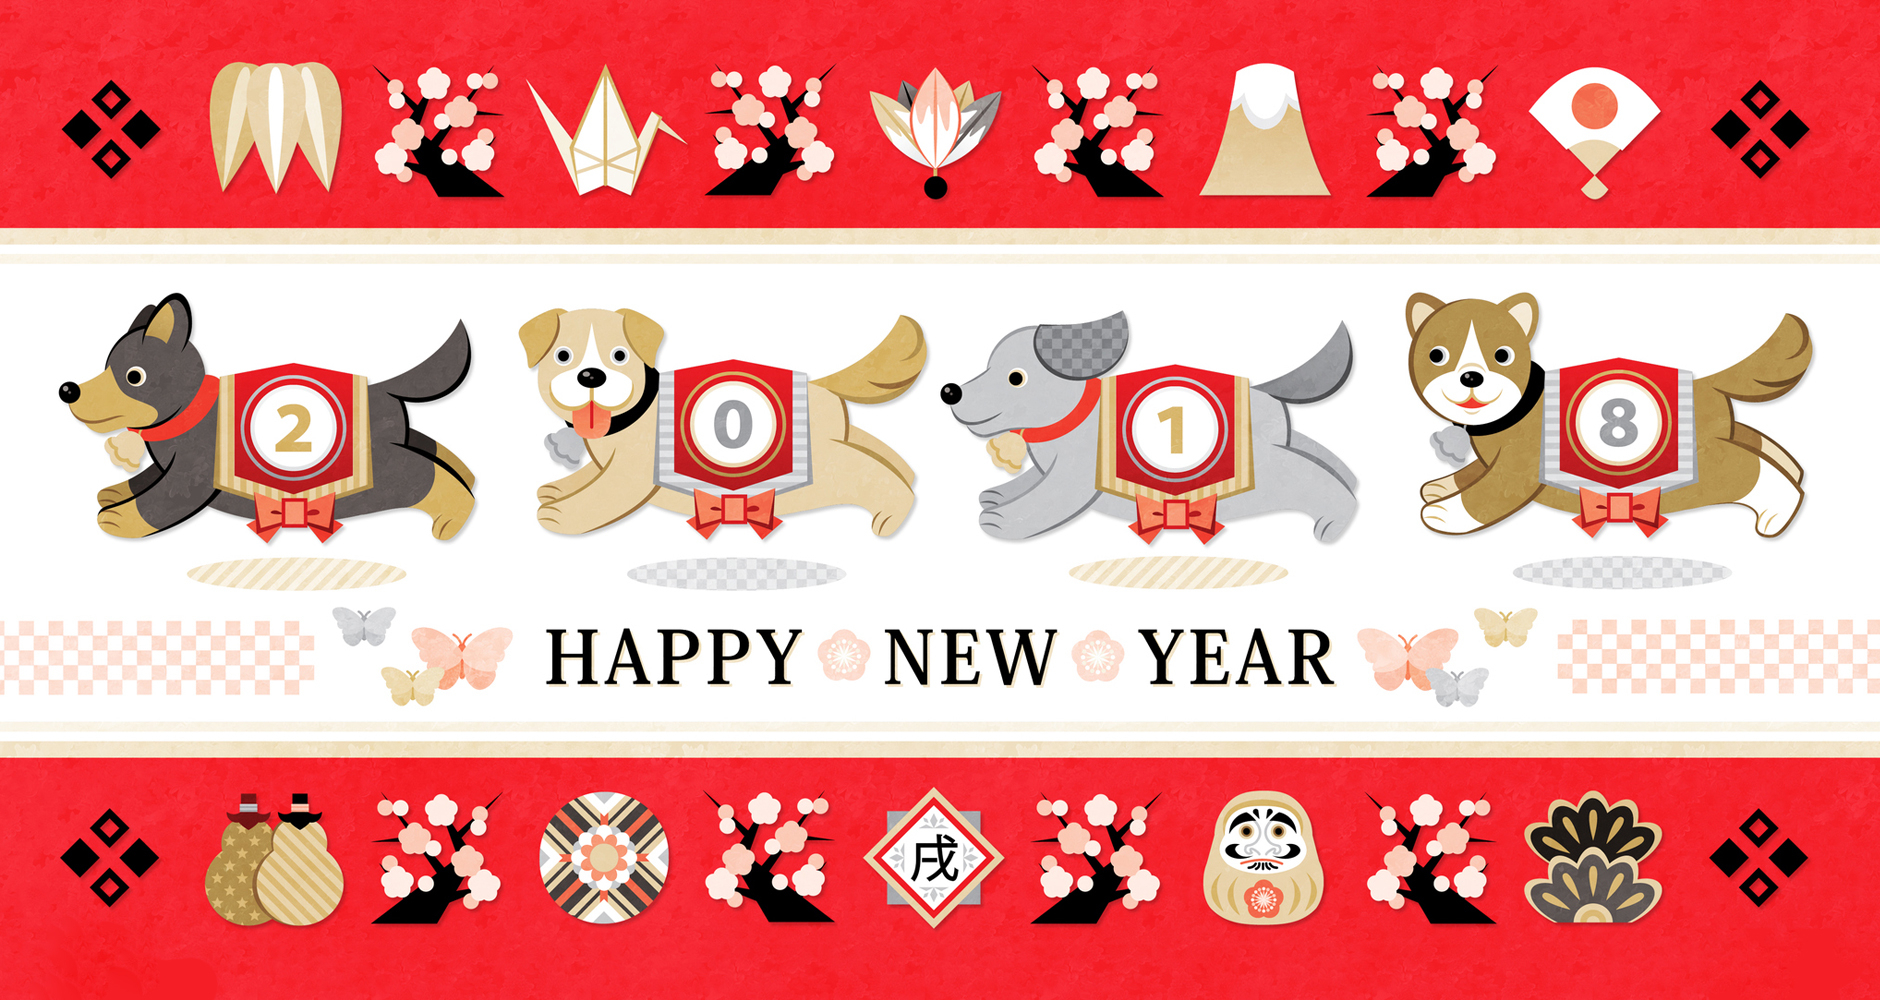 It's The Year Of The Dog: Happy Chinese New Year 2018